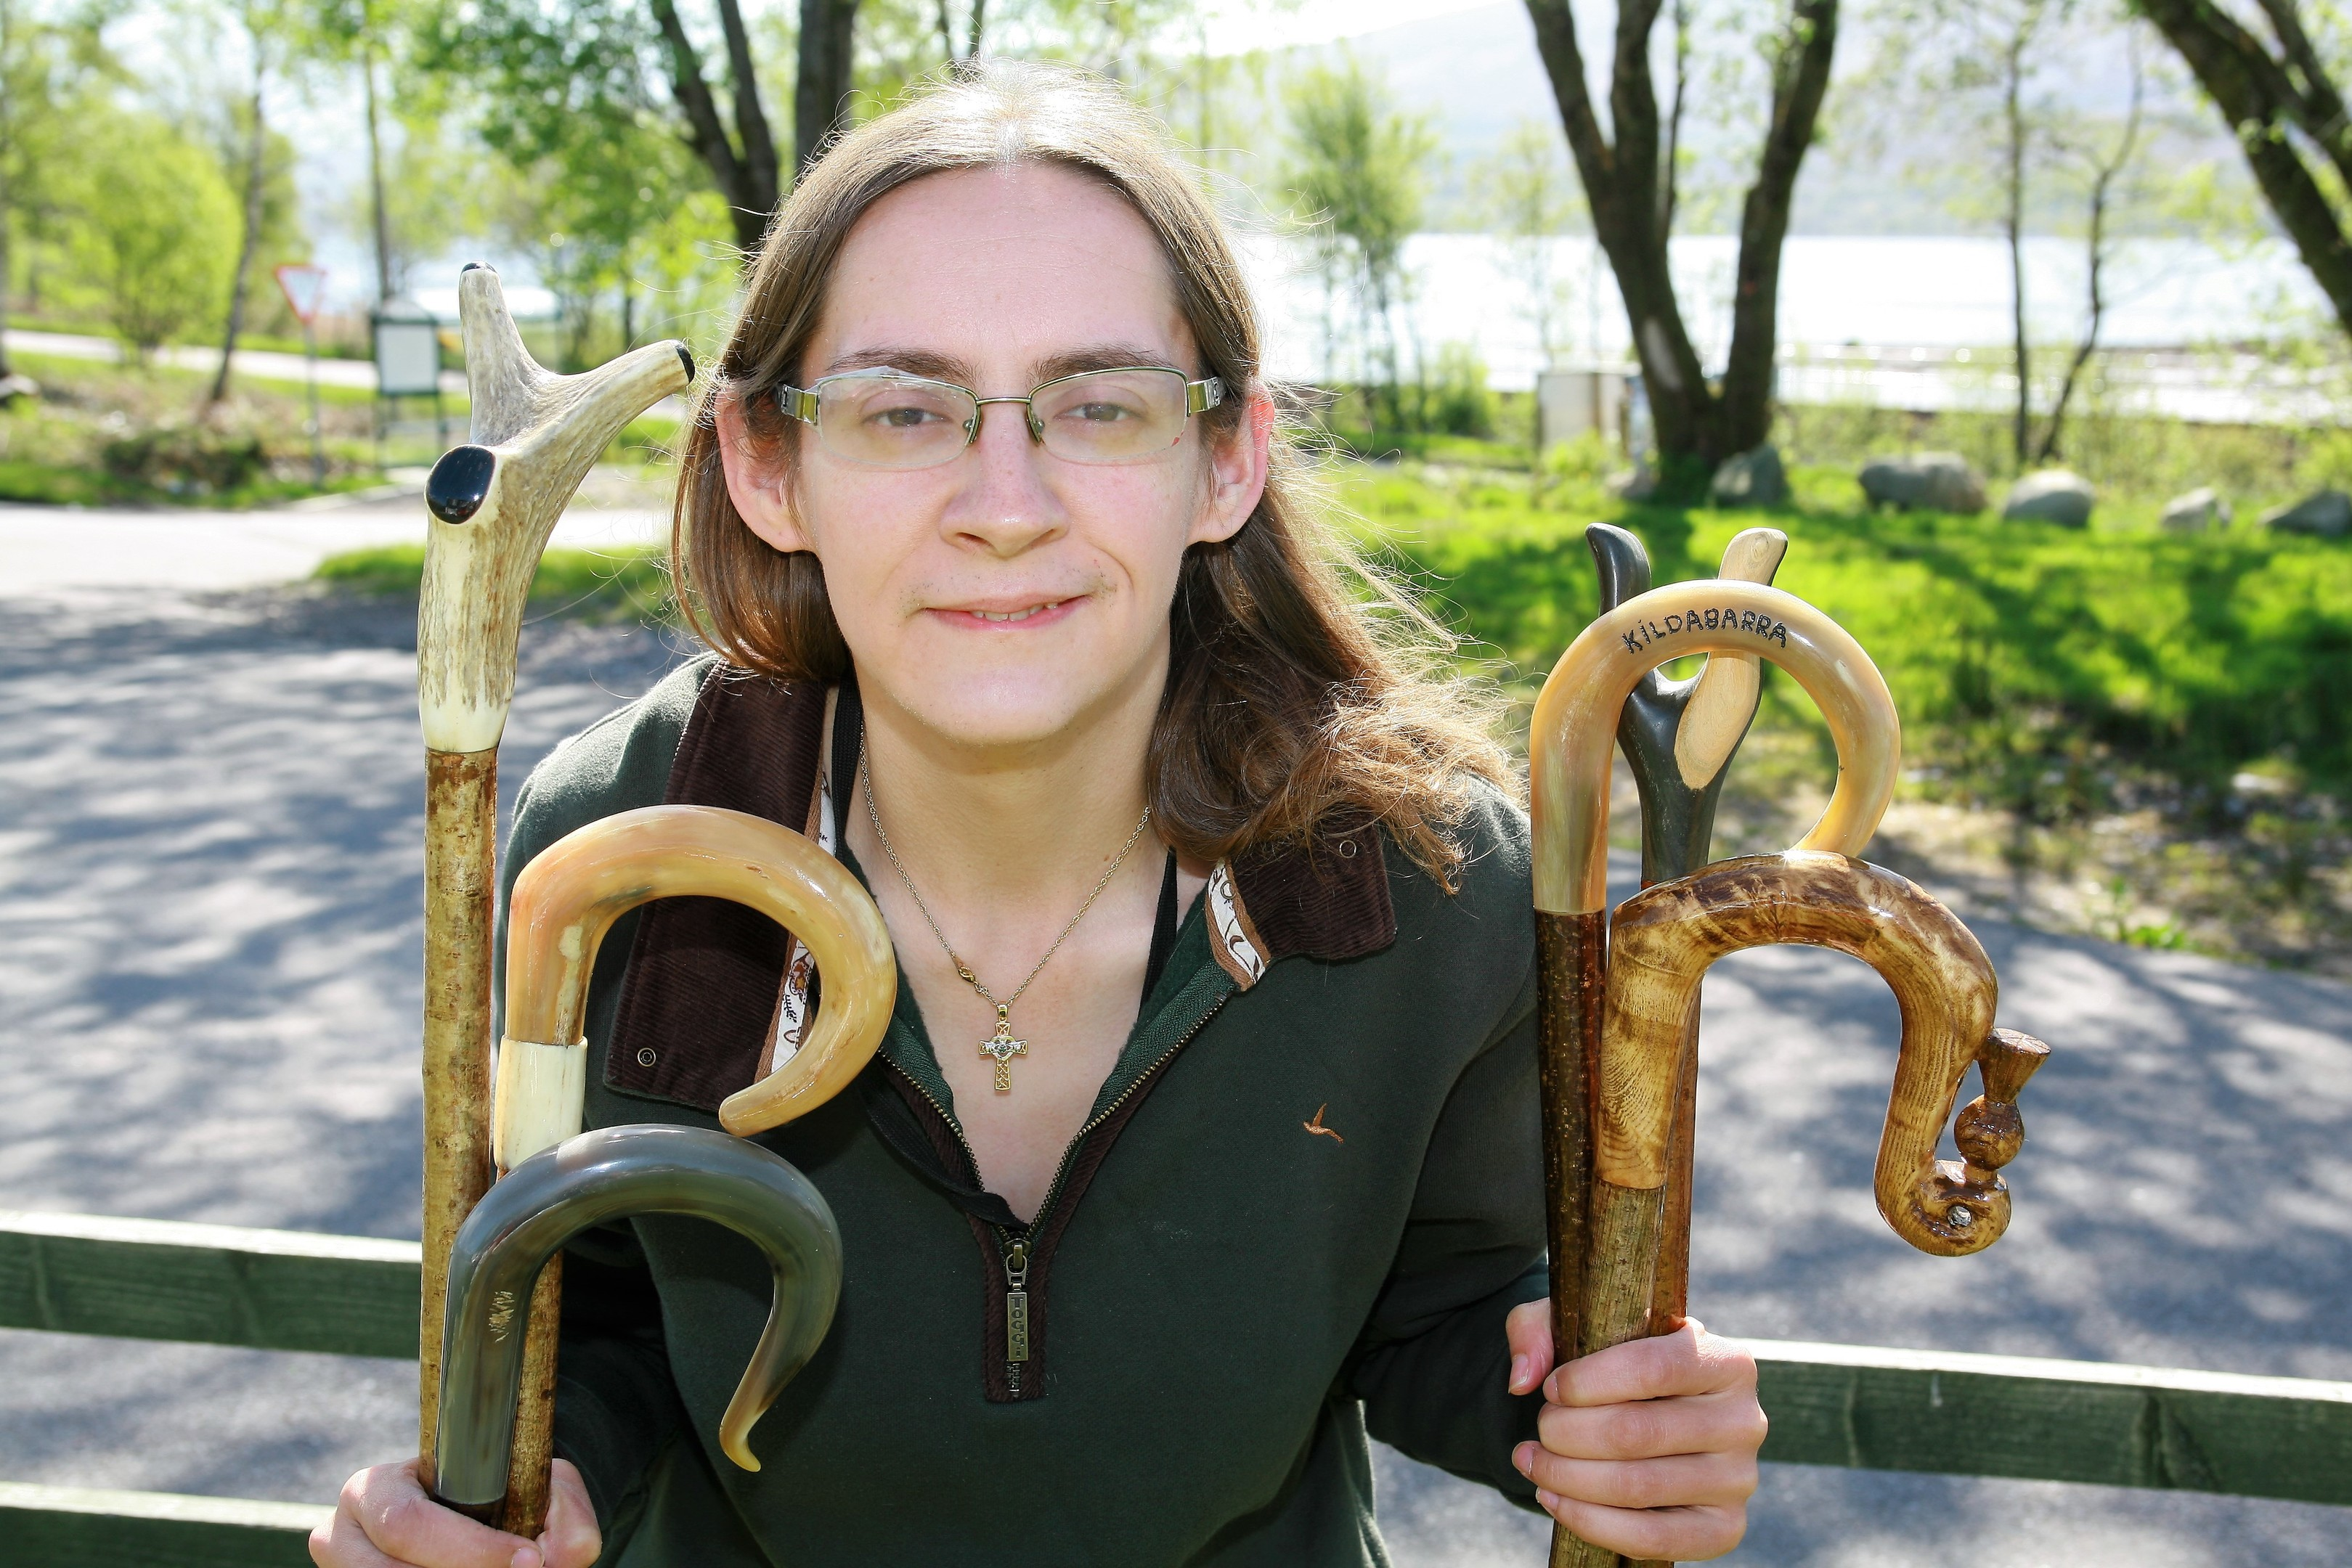 Heather Gibson makes shepherd's crooks and walking sticks - and she even has a royal fan.